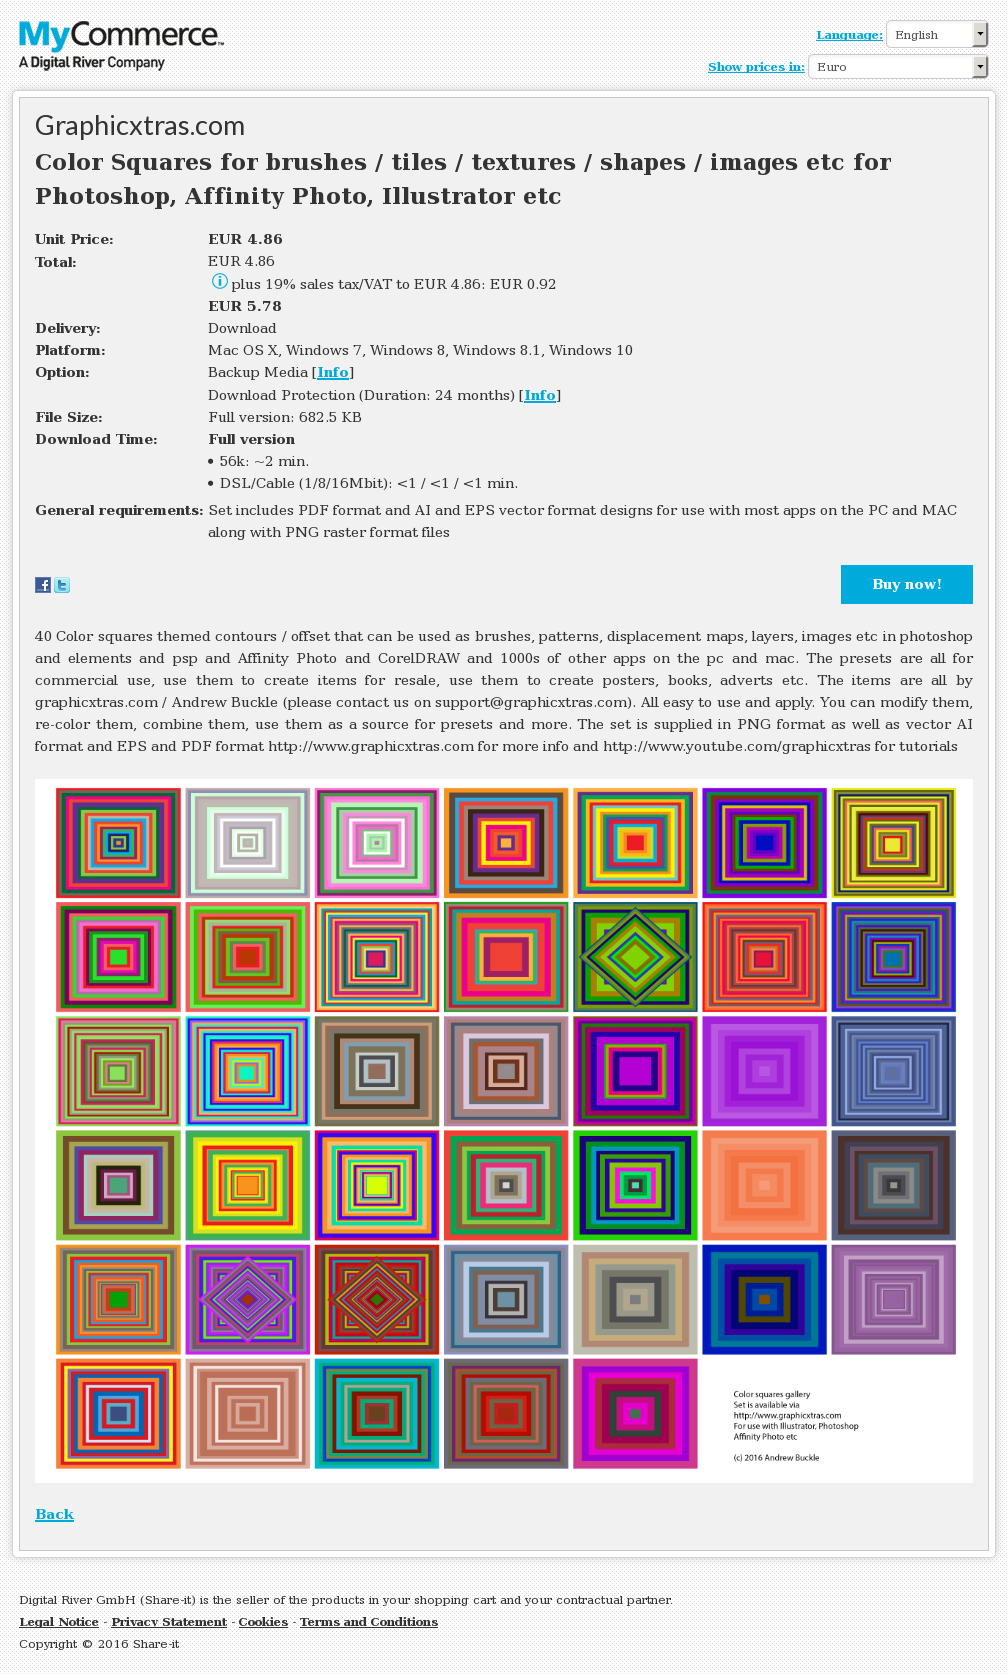 Color Squares for brushes / tiles / textures / shapes / images etc for Photoshop, Affinity Photo, Illustrator etc